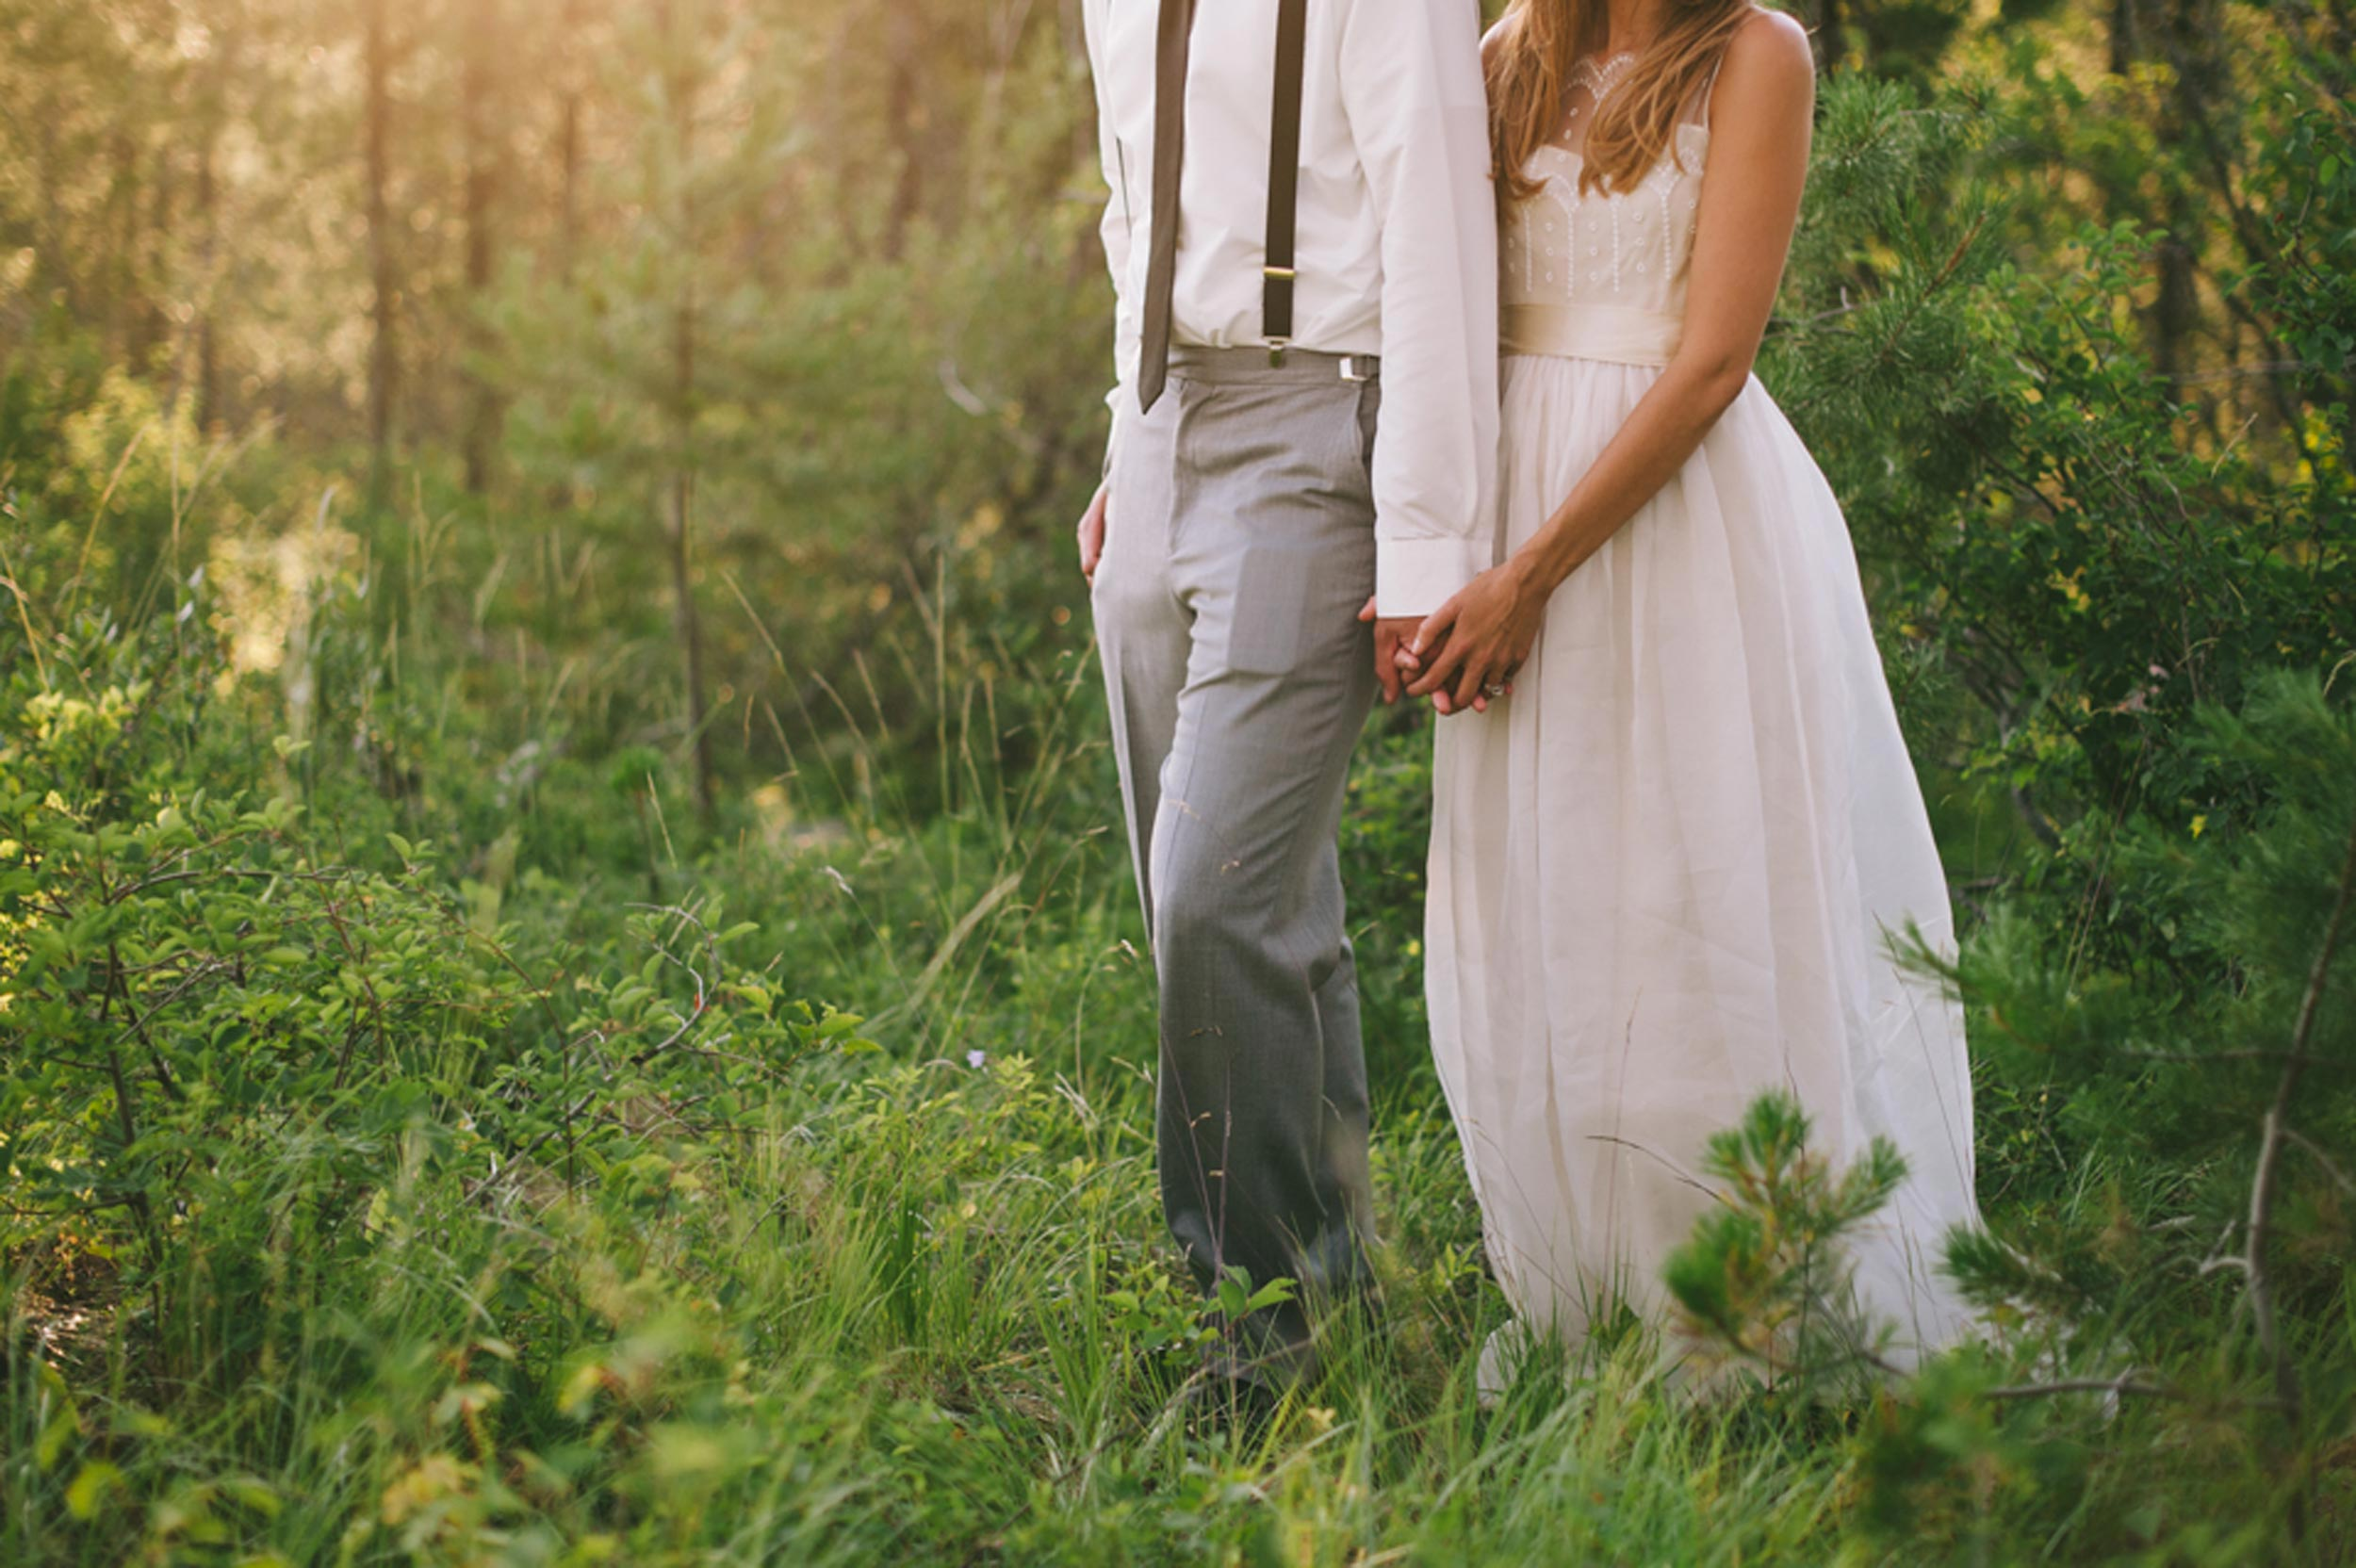 Field-Wedding-Studio-Montana-Wedding-Planner-004.jpg